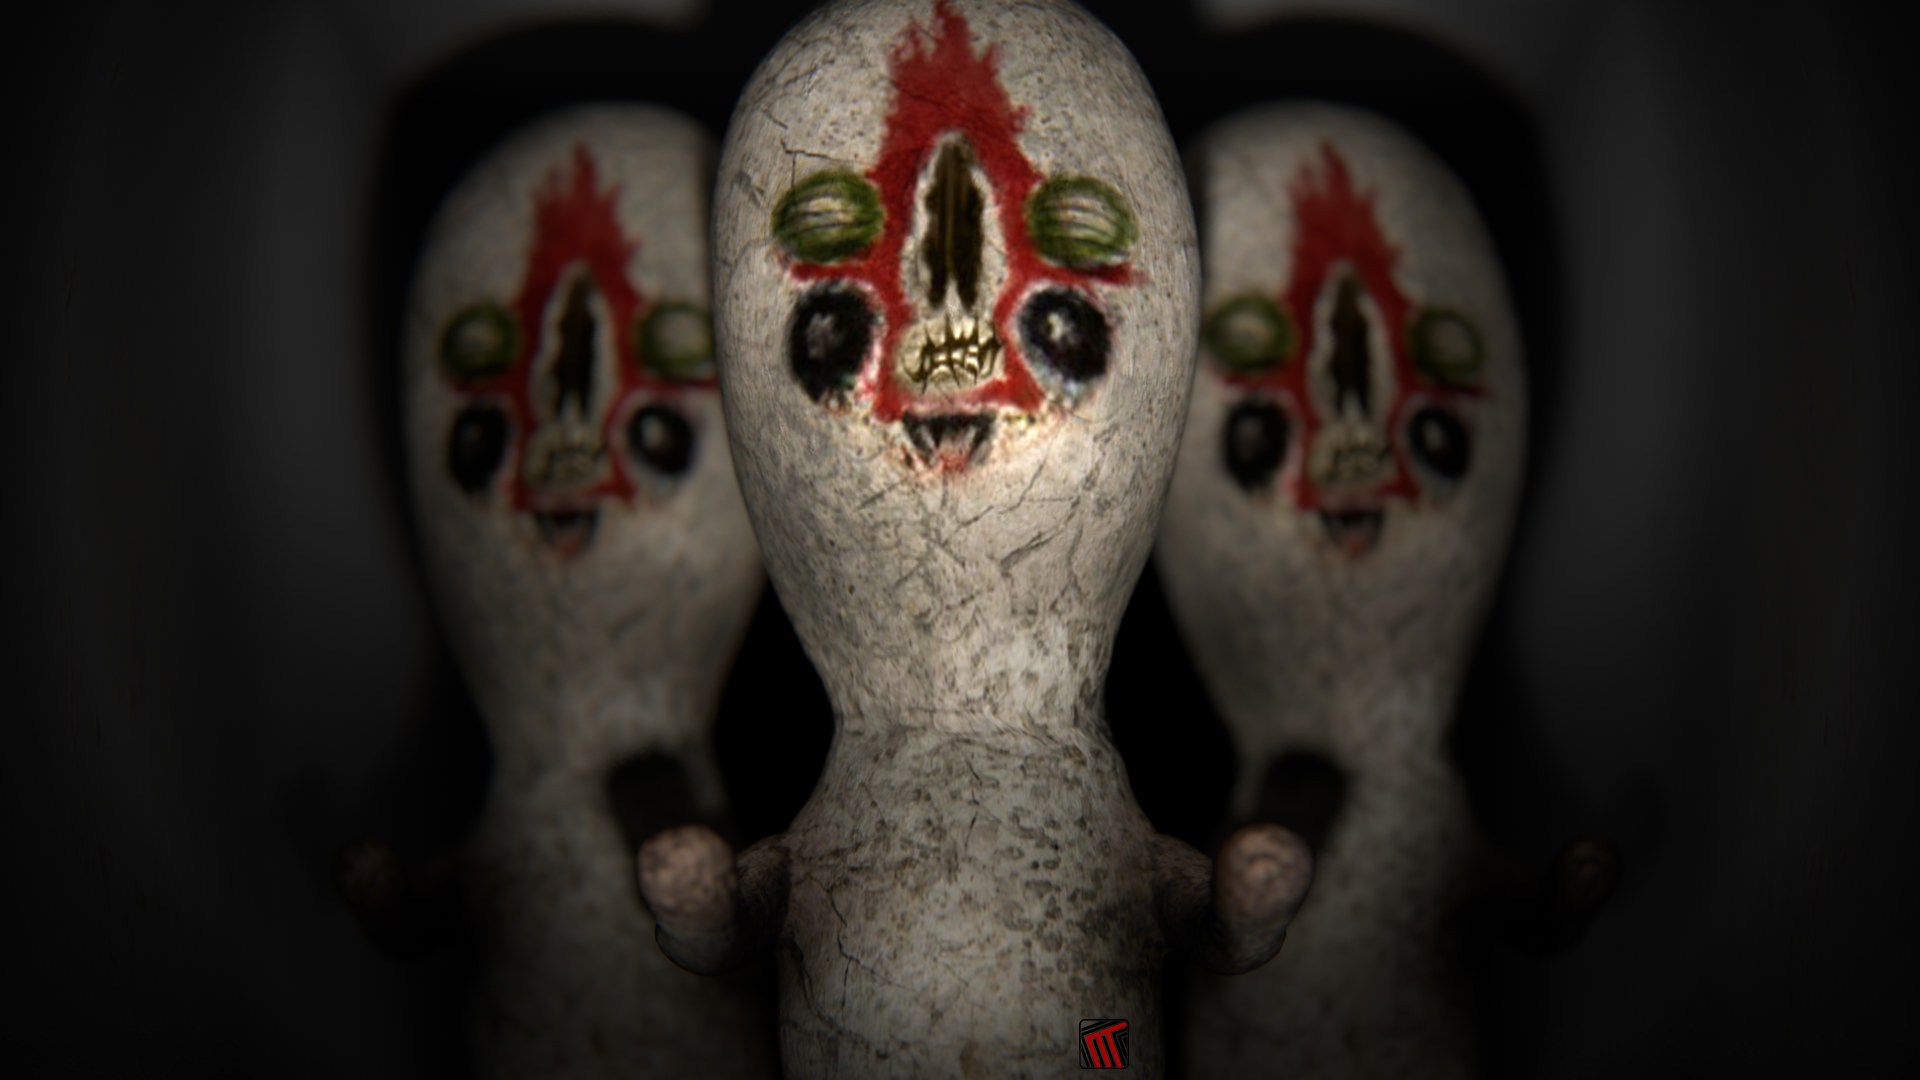 SCP - Containment Breach picture